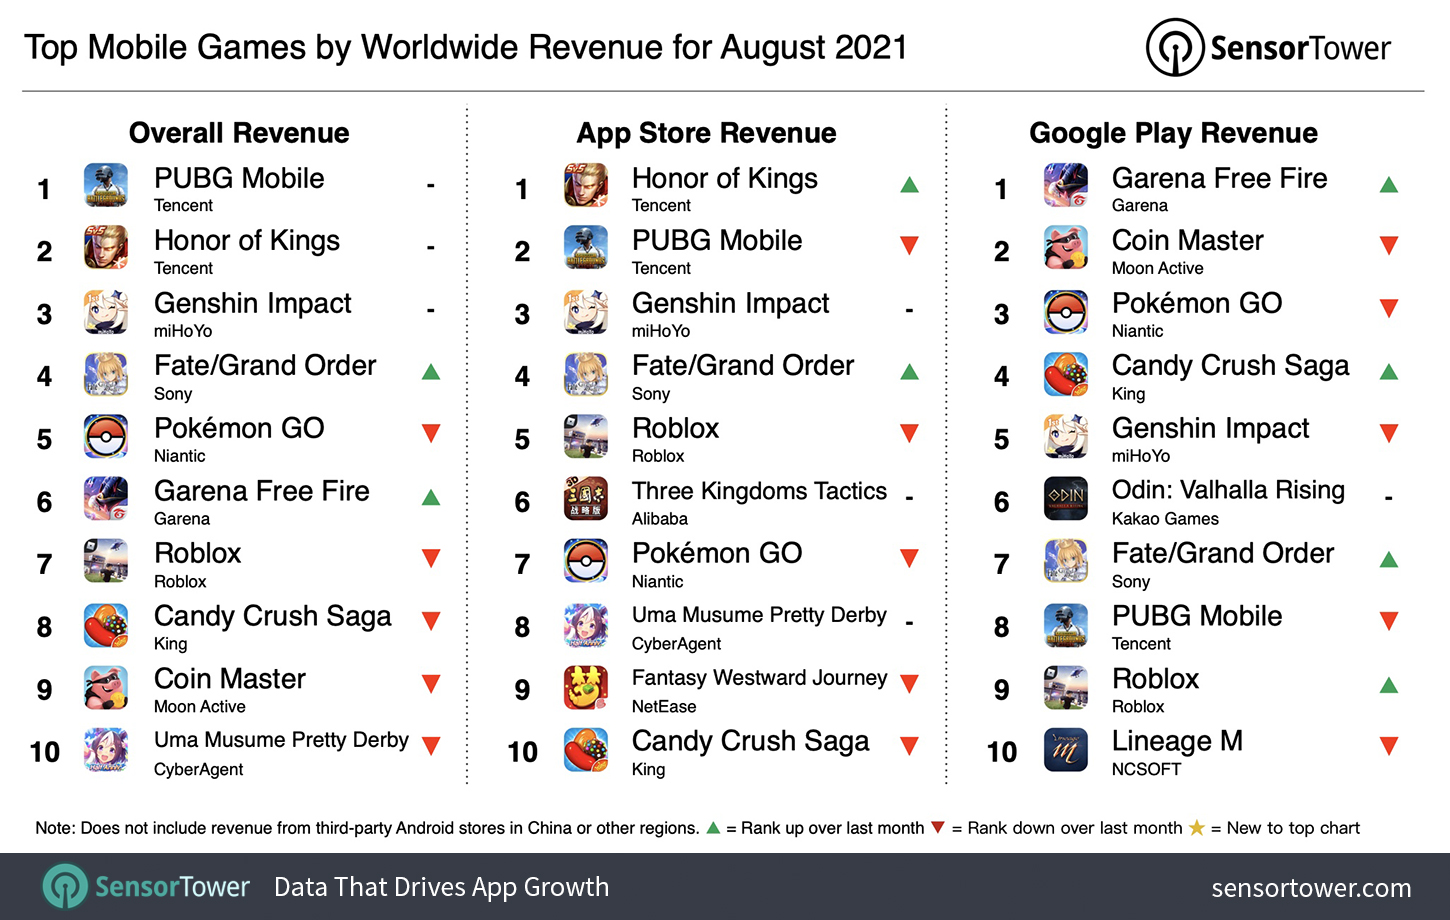 Top Grossing Mobile Games Worldwide for August 2021